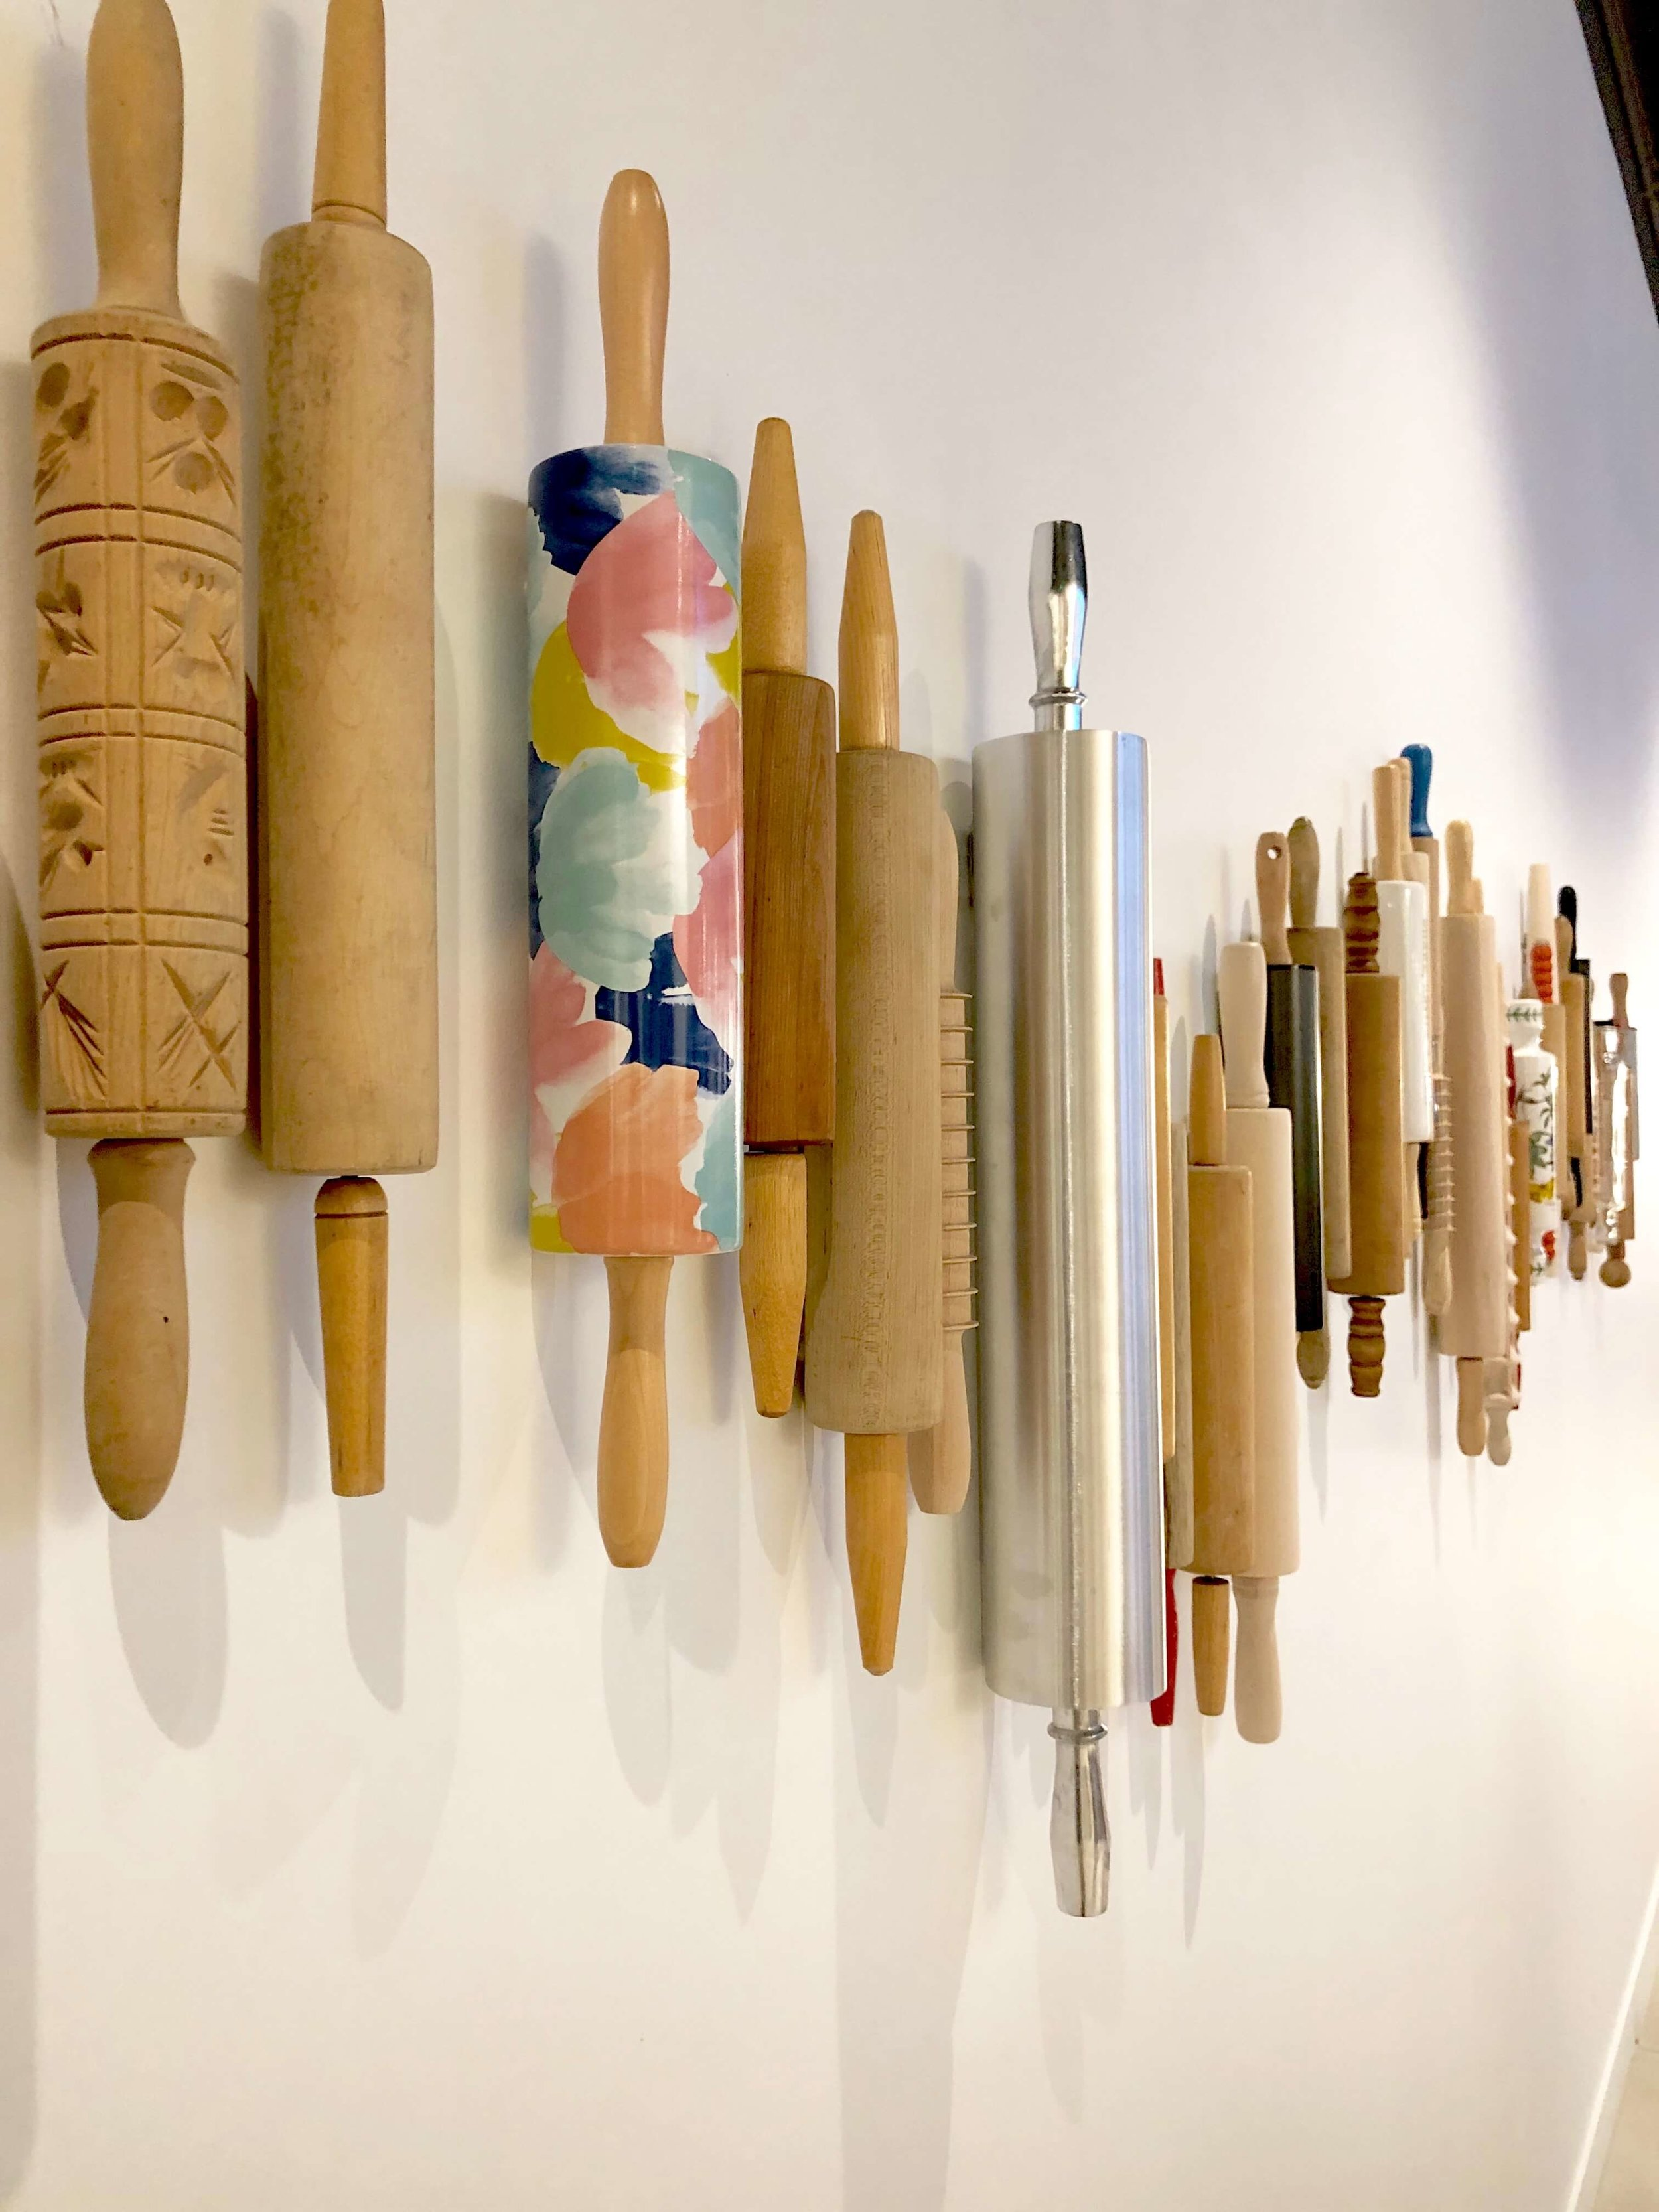 Rolling pins wall decor - SKS Appliances Experience and Design Center, Napa